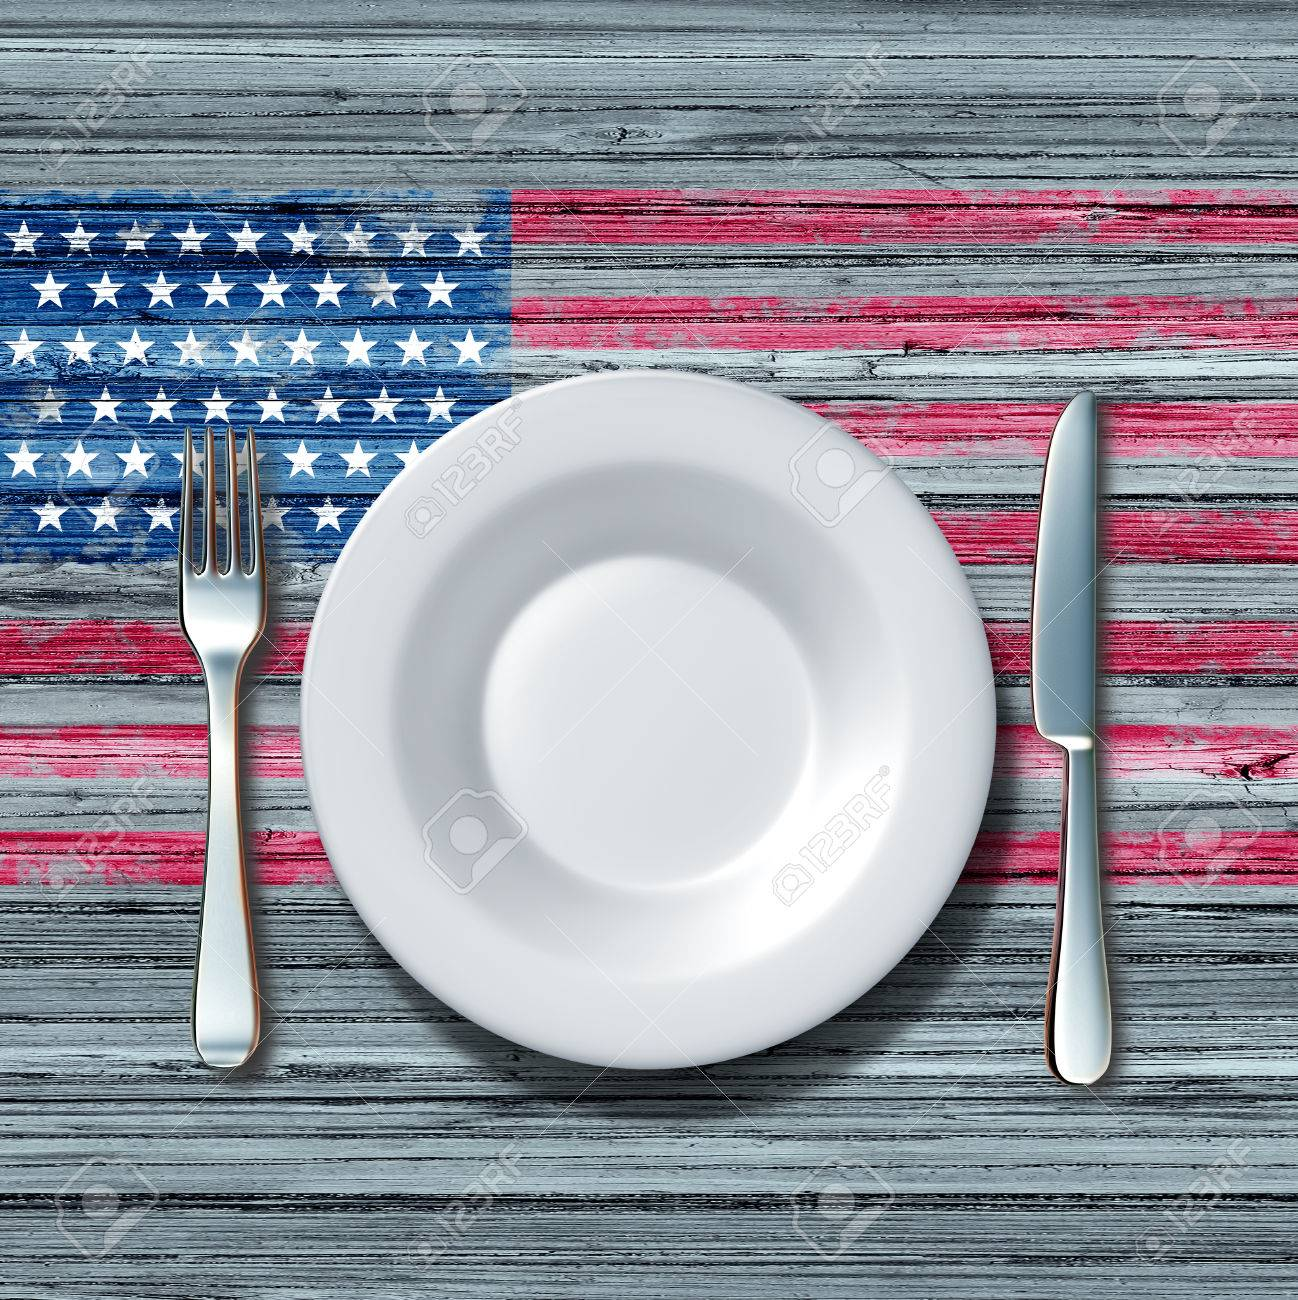 American cuisine food concept as a place setting with knife and fork on an old rustick wood table with a symbol of the flag of the united states as an icon of traditional family eating in america. - 49949650